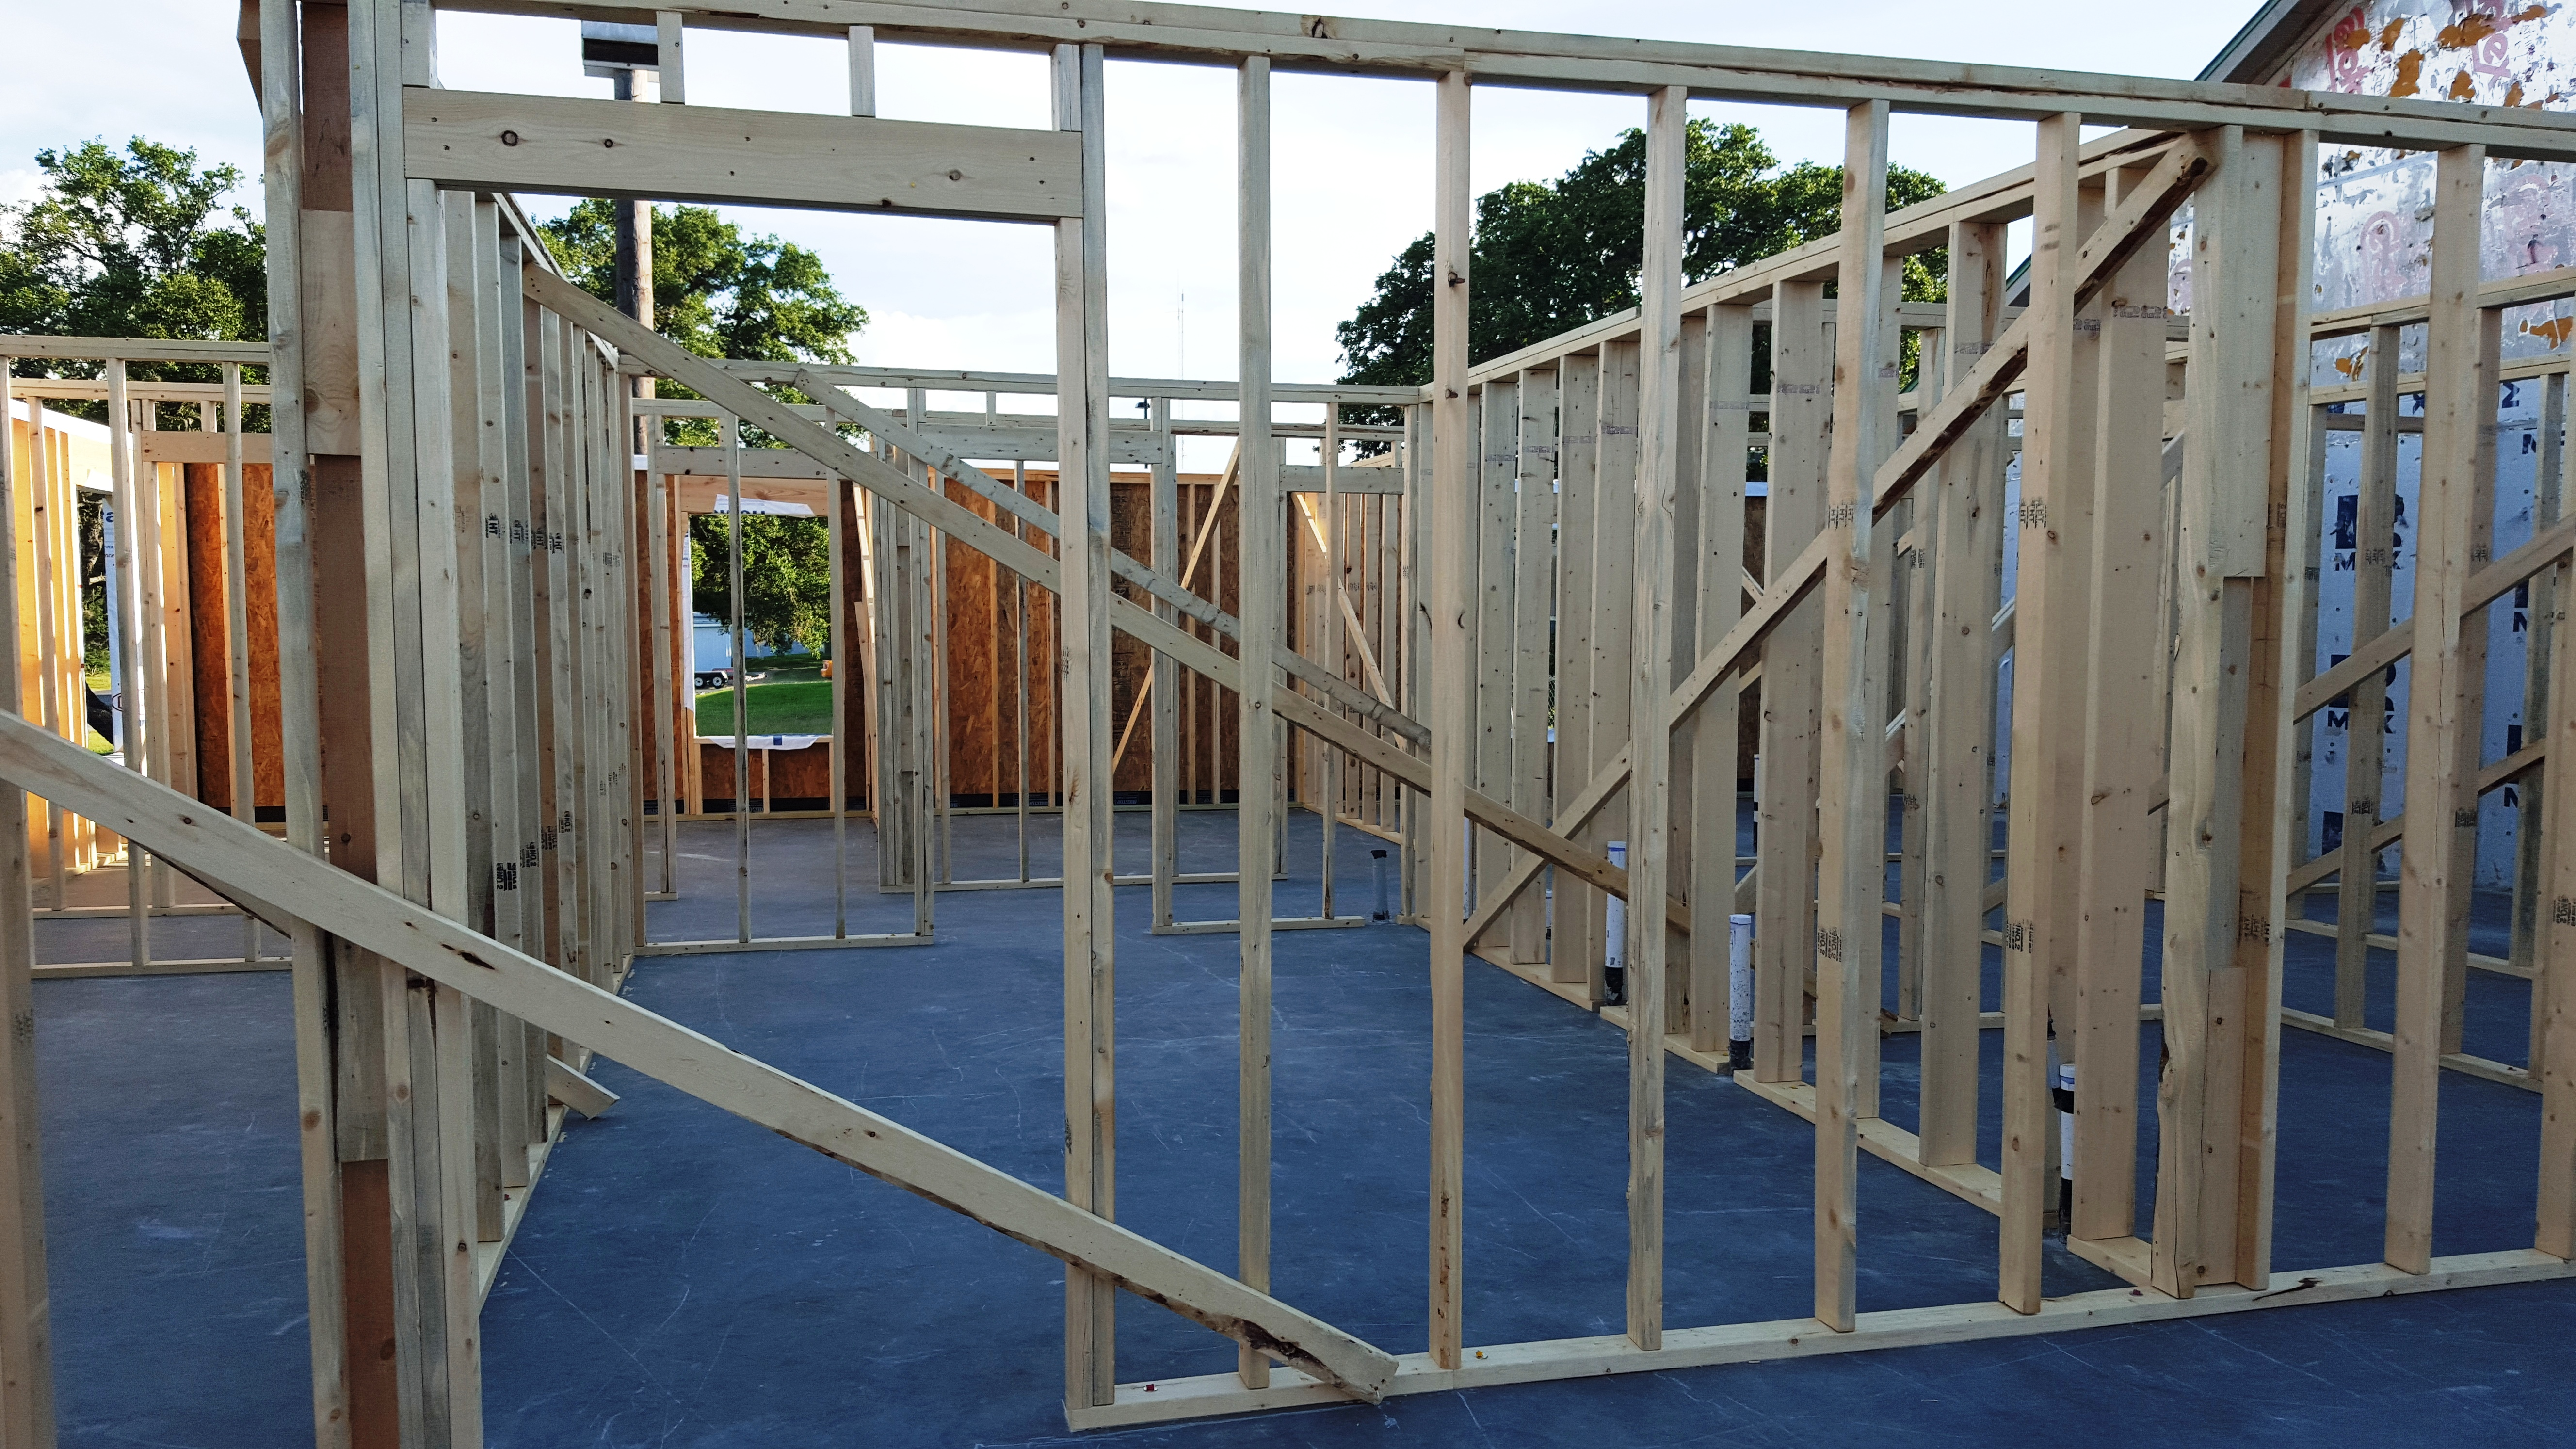 Library Expansion - Construction - 6-23-16 -5.jpg